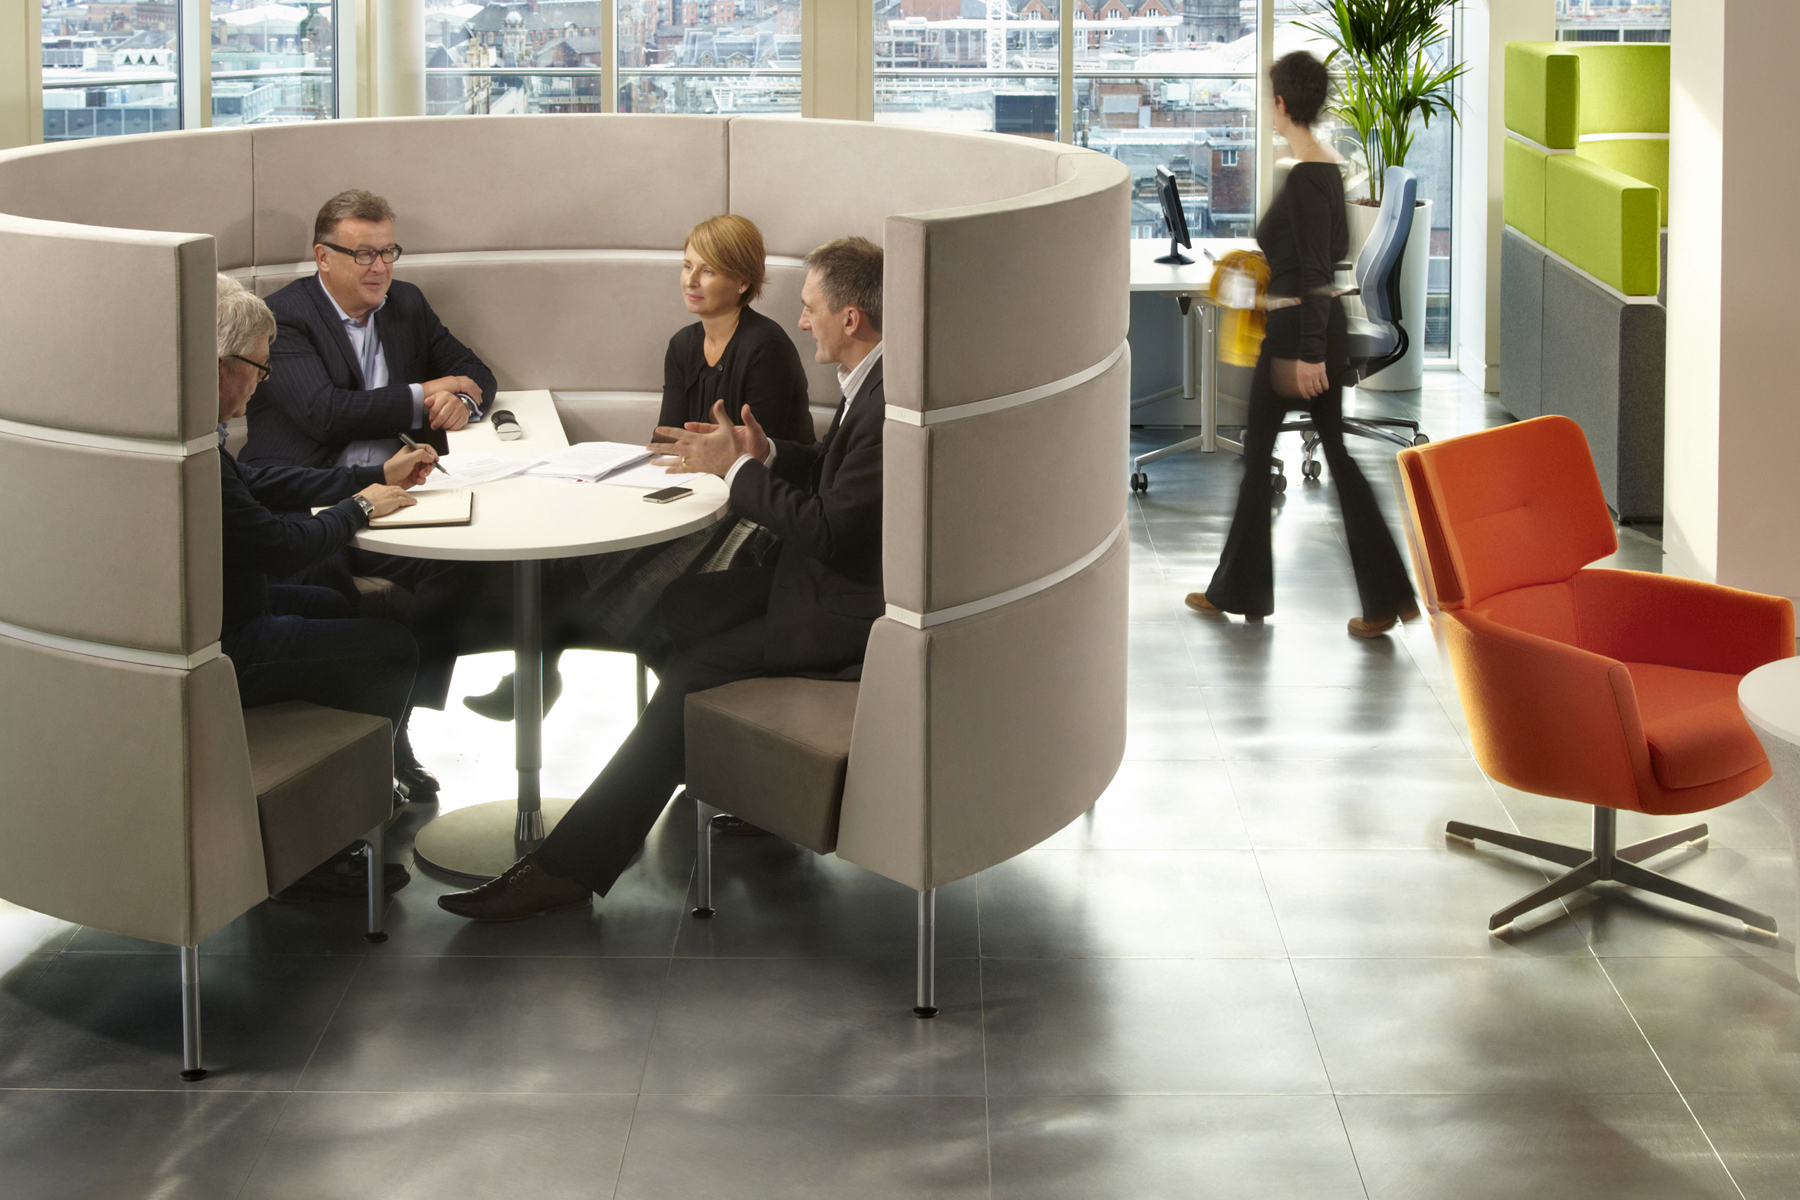 Acoustic Furniture Allows Small Groups To Brainstorm Effectively In A Gym Style  Layout In Their